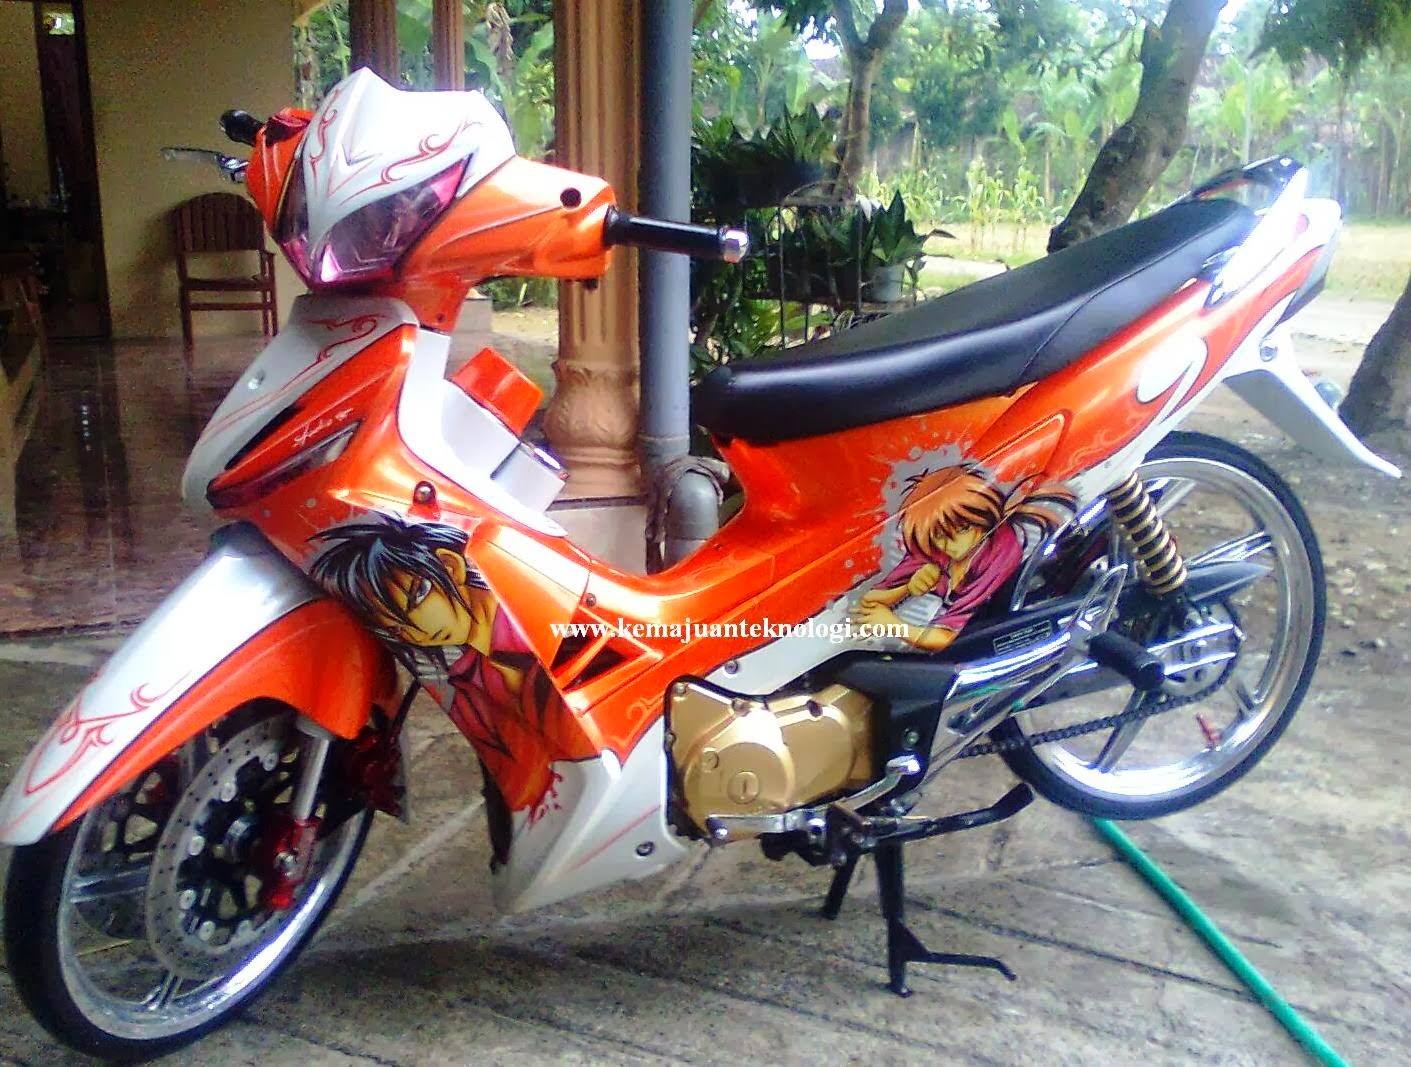 Supra X 125 Modifikasi Drag